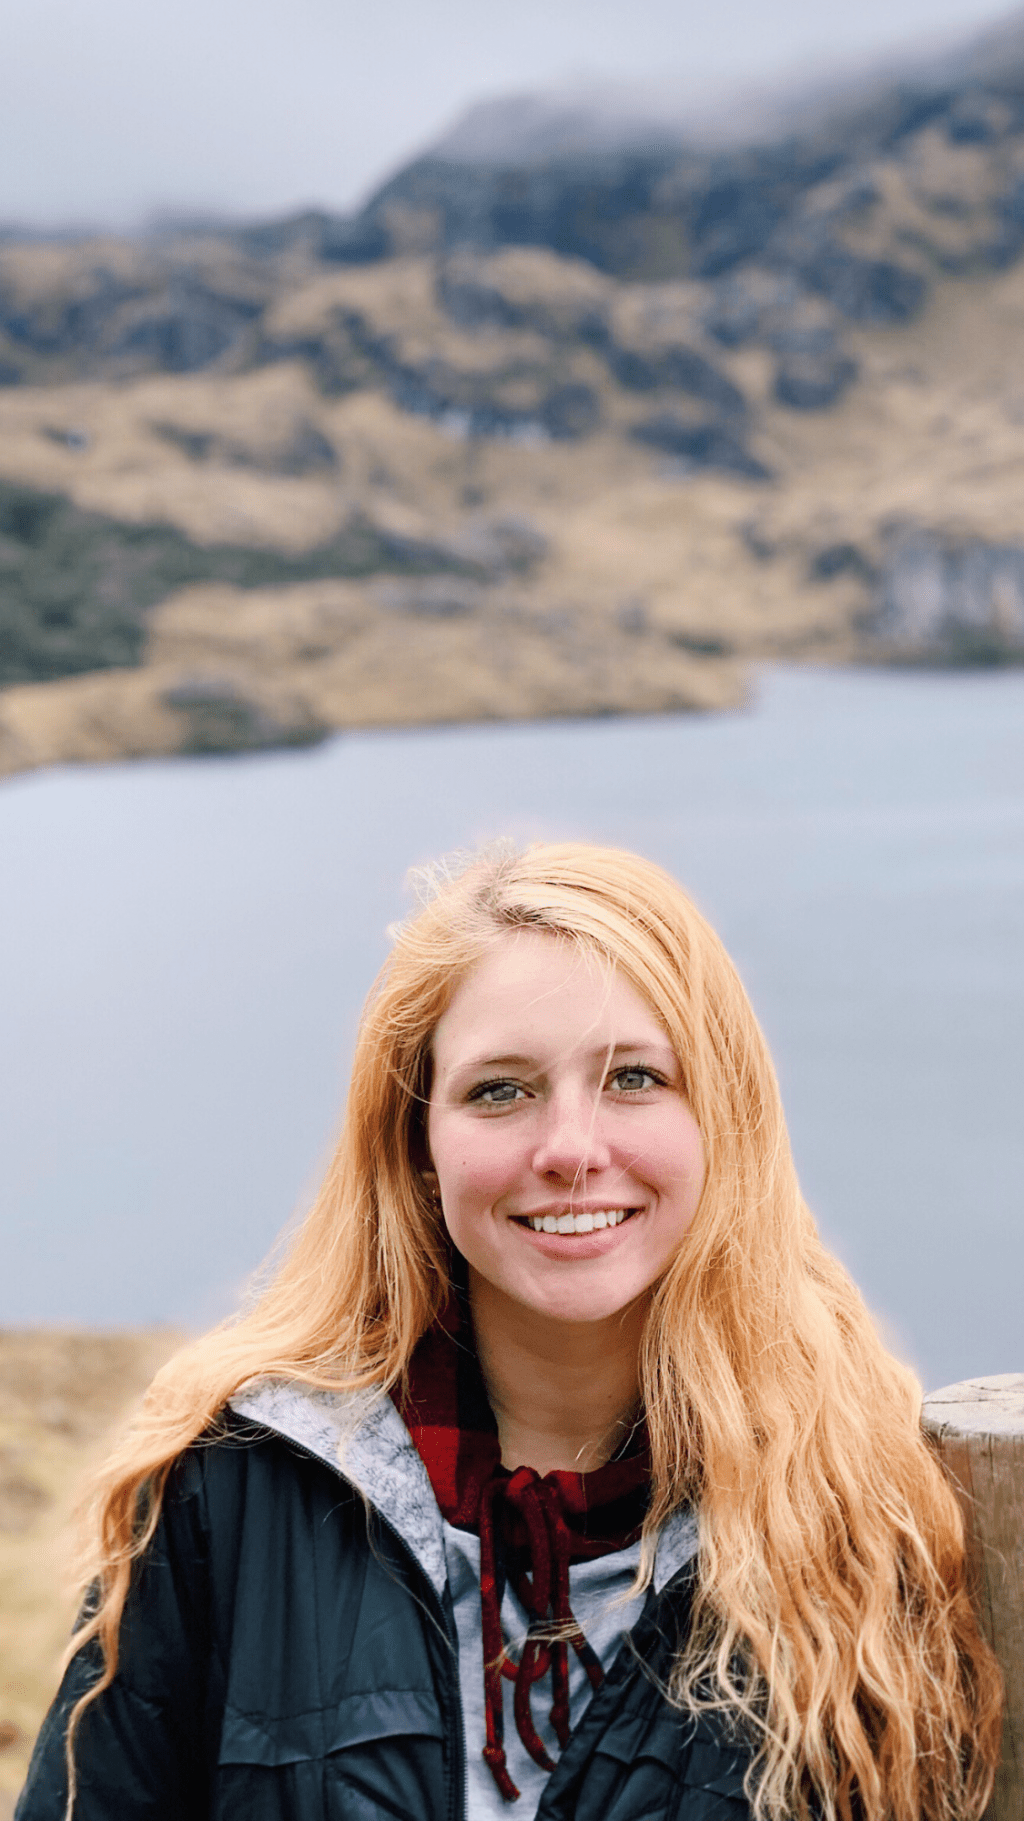 Cannon poses in Cajas, a national park in Ecuador. She visited her family in the country for the summer, as she is originally from Ecuador and moved to the United States when she was young.